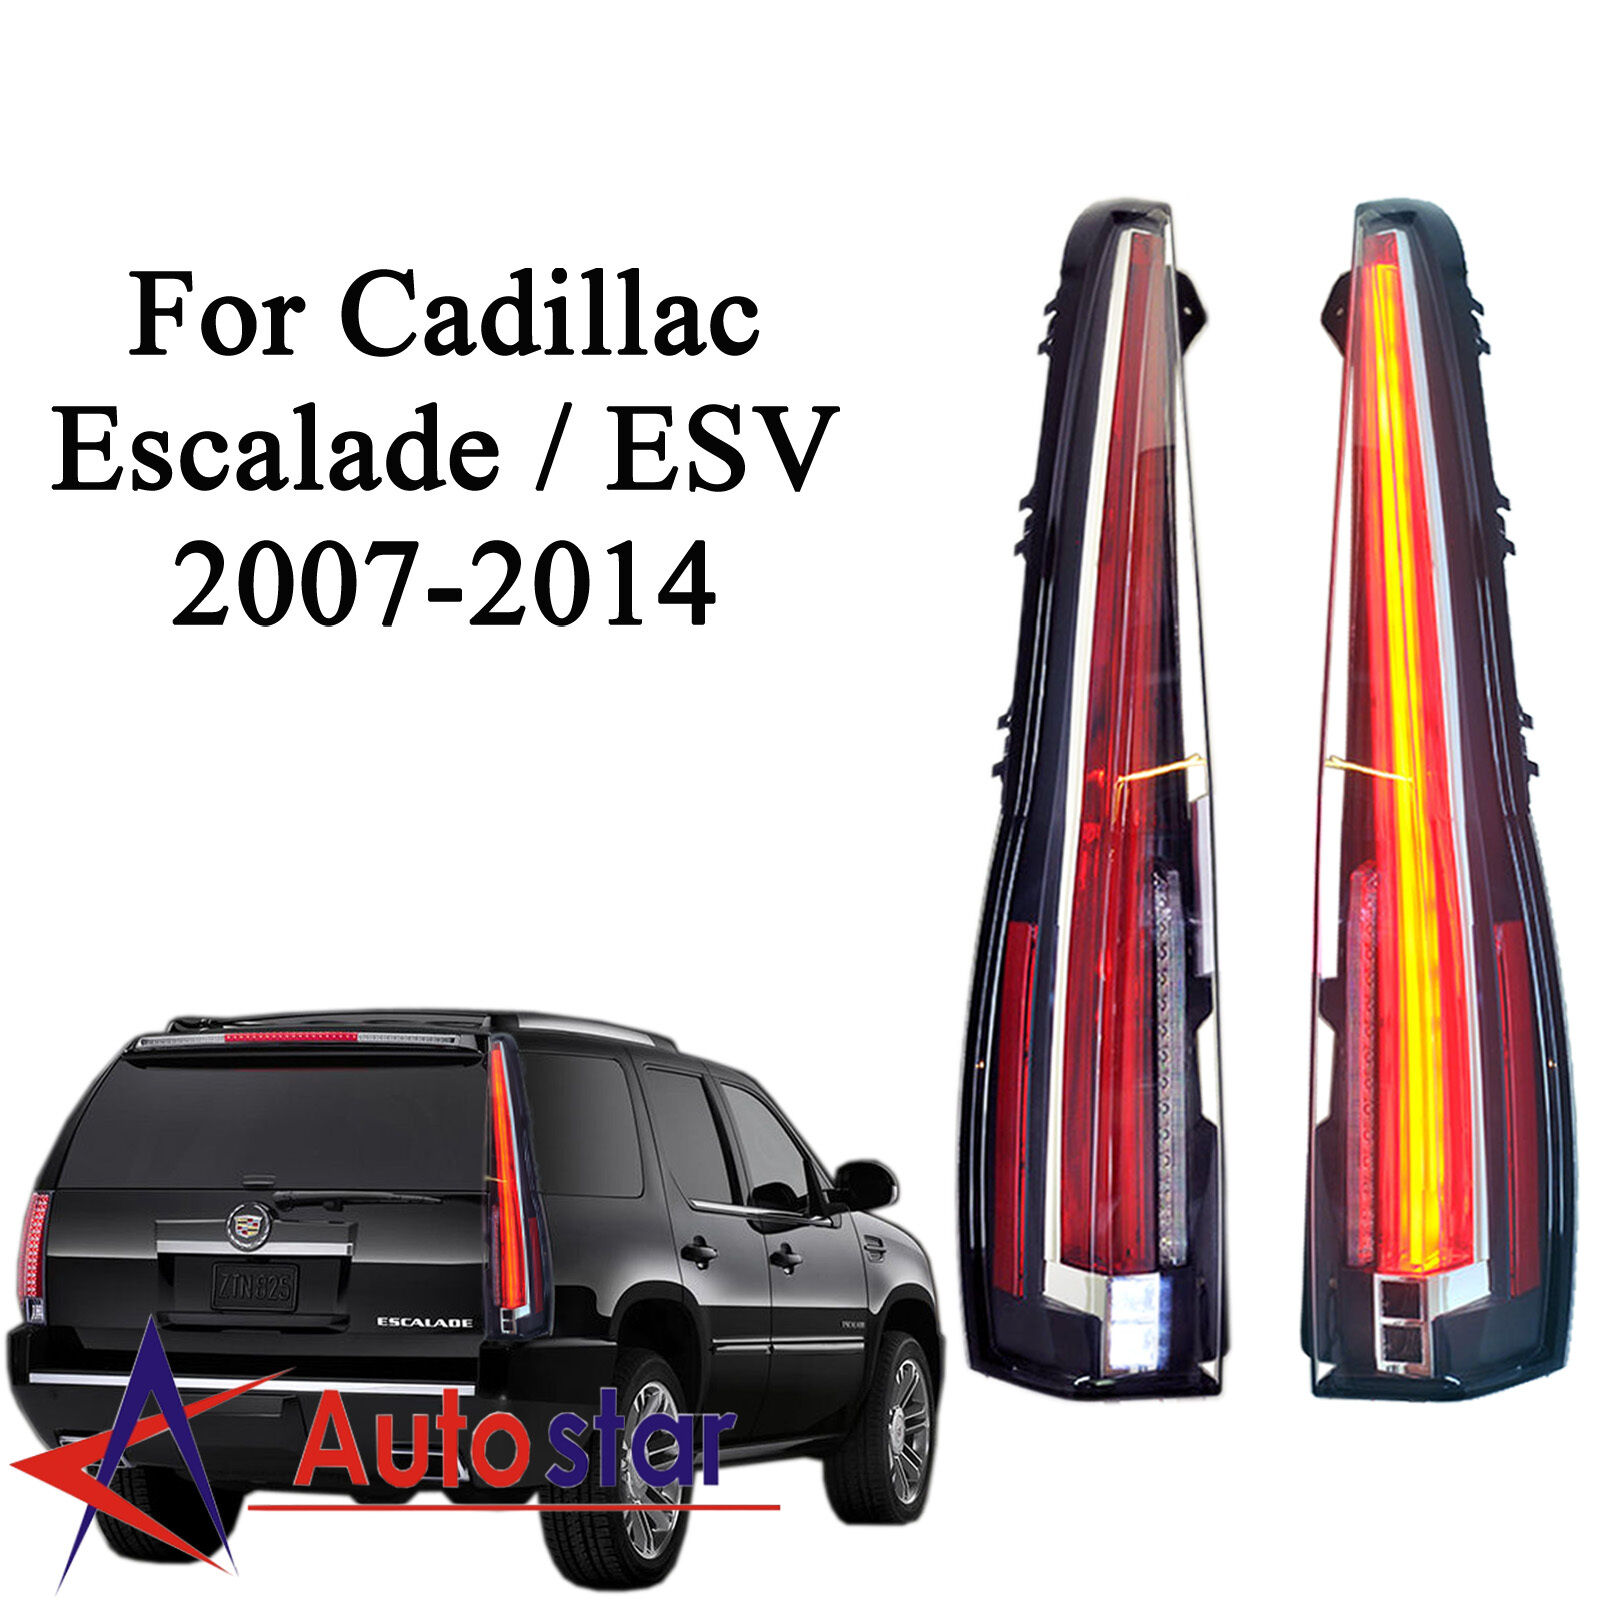 LED Tail Lights For Cadillac Escalade / ESV 2007-2014 Red